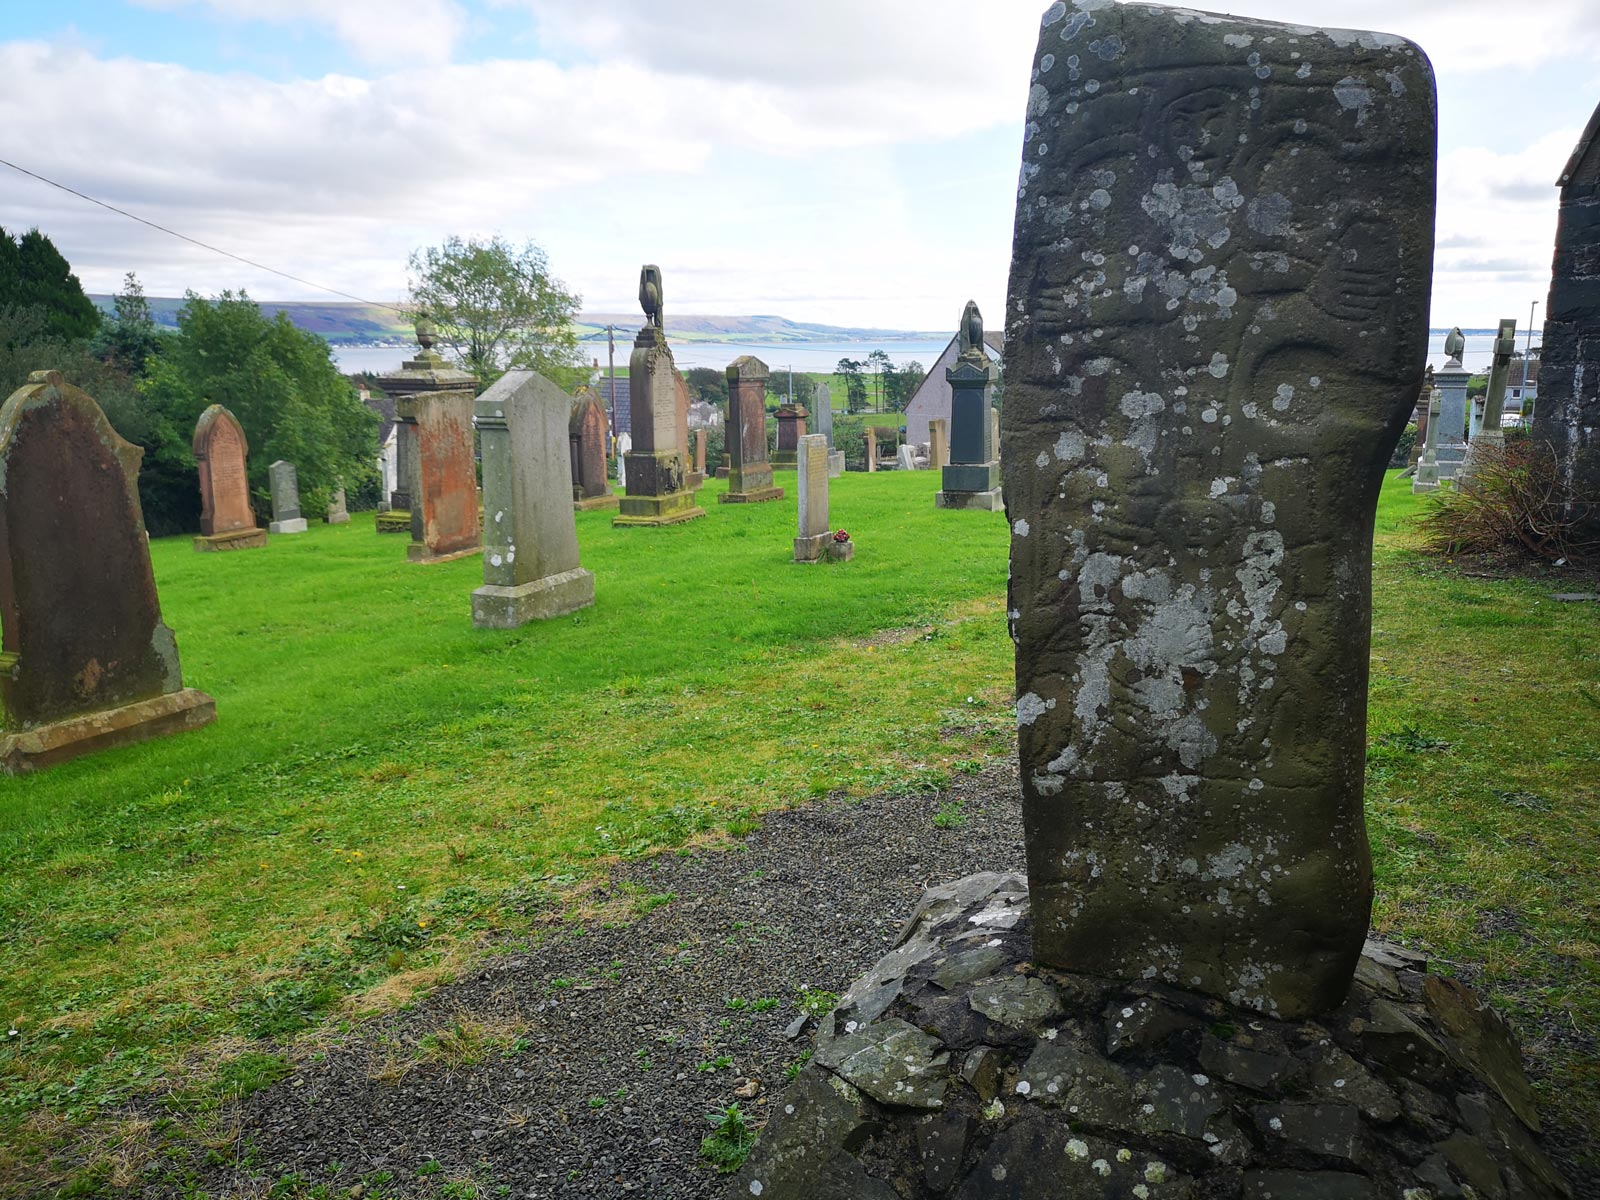 The Kilmorie Stone stands in the churchyard of the early Kirkcolm Church